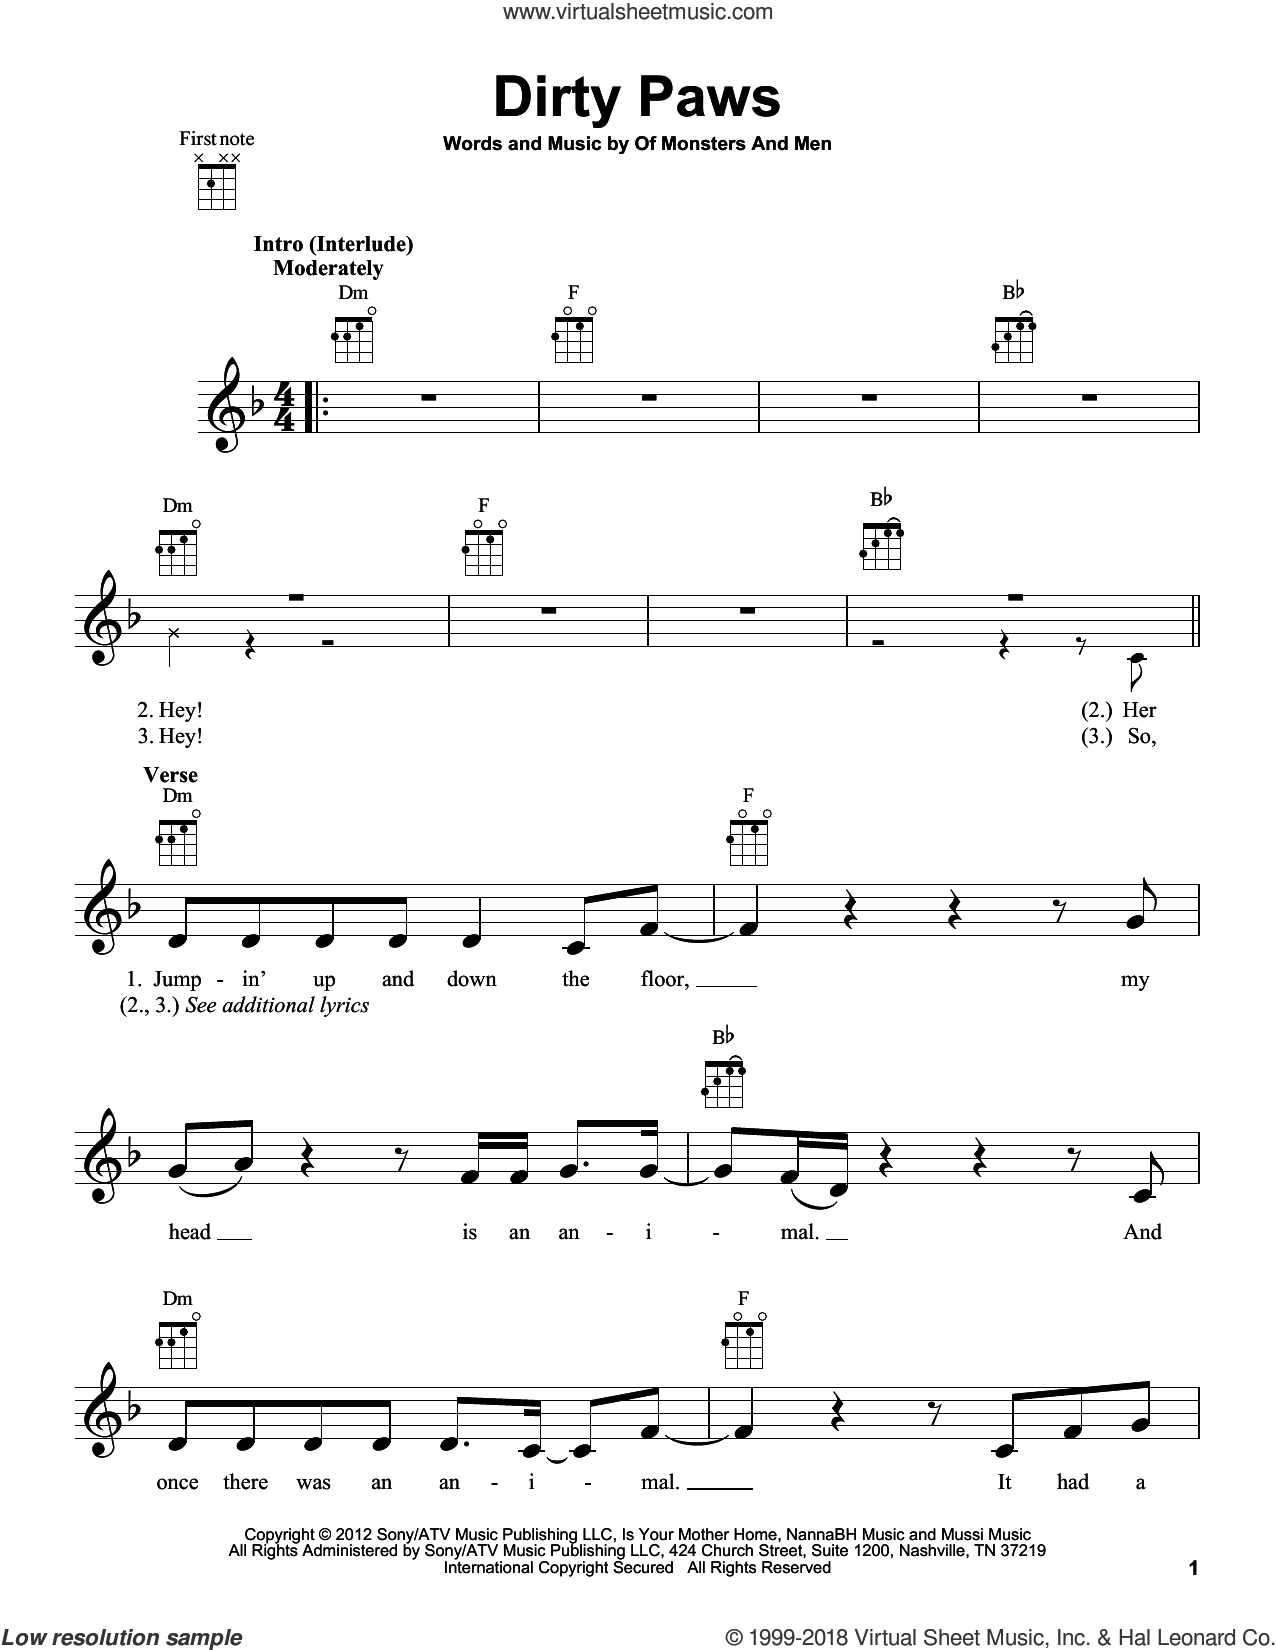 Dirty Paws Chords Men Dirty Paws Sheet Music For Ukulele Pdf Interactive